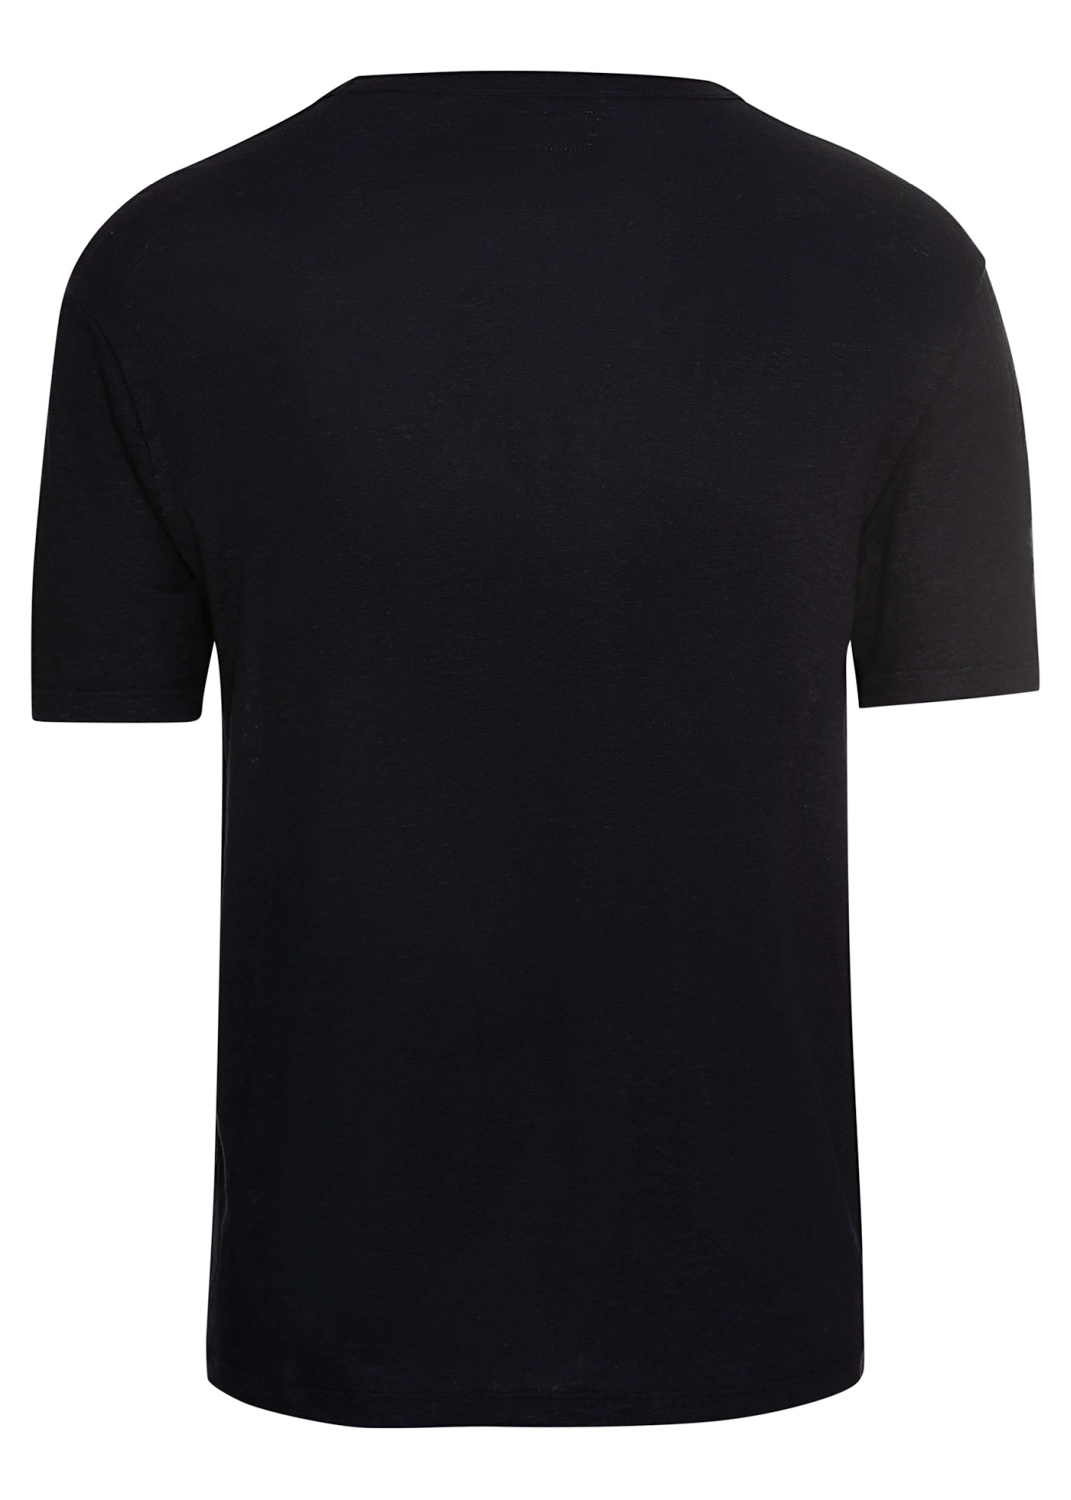 EMILE TEE PIECE DYED LINEN image number 1